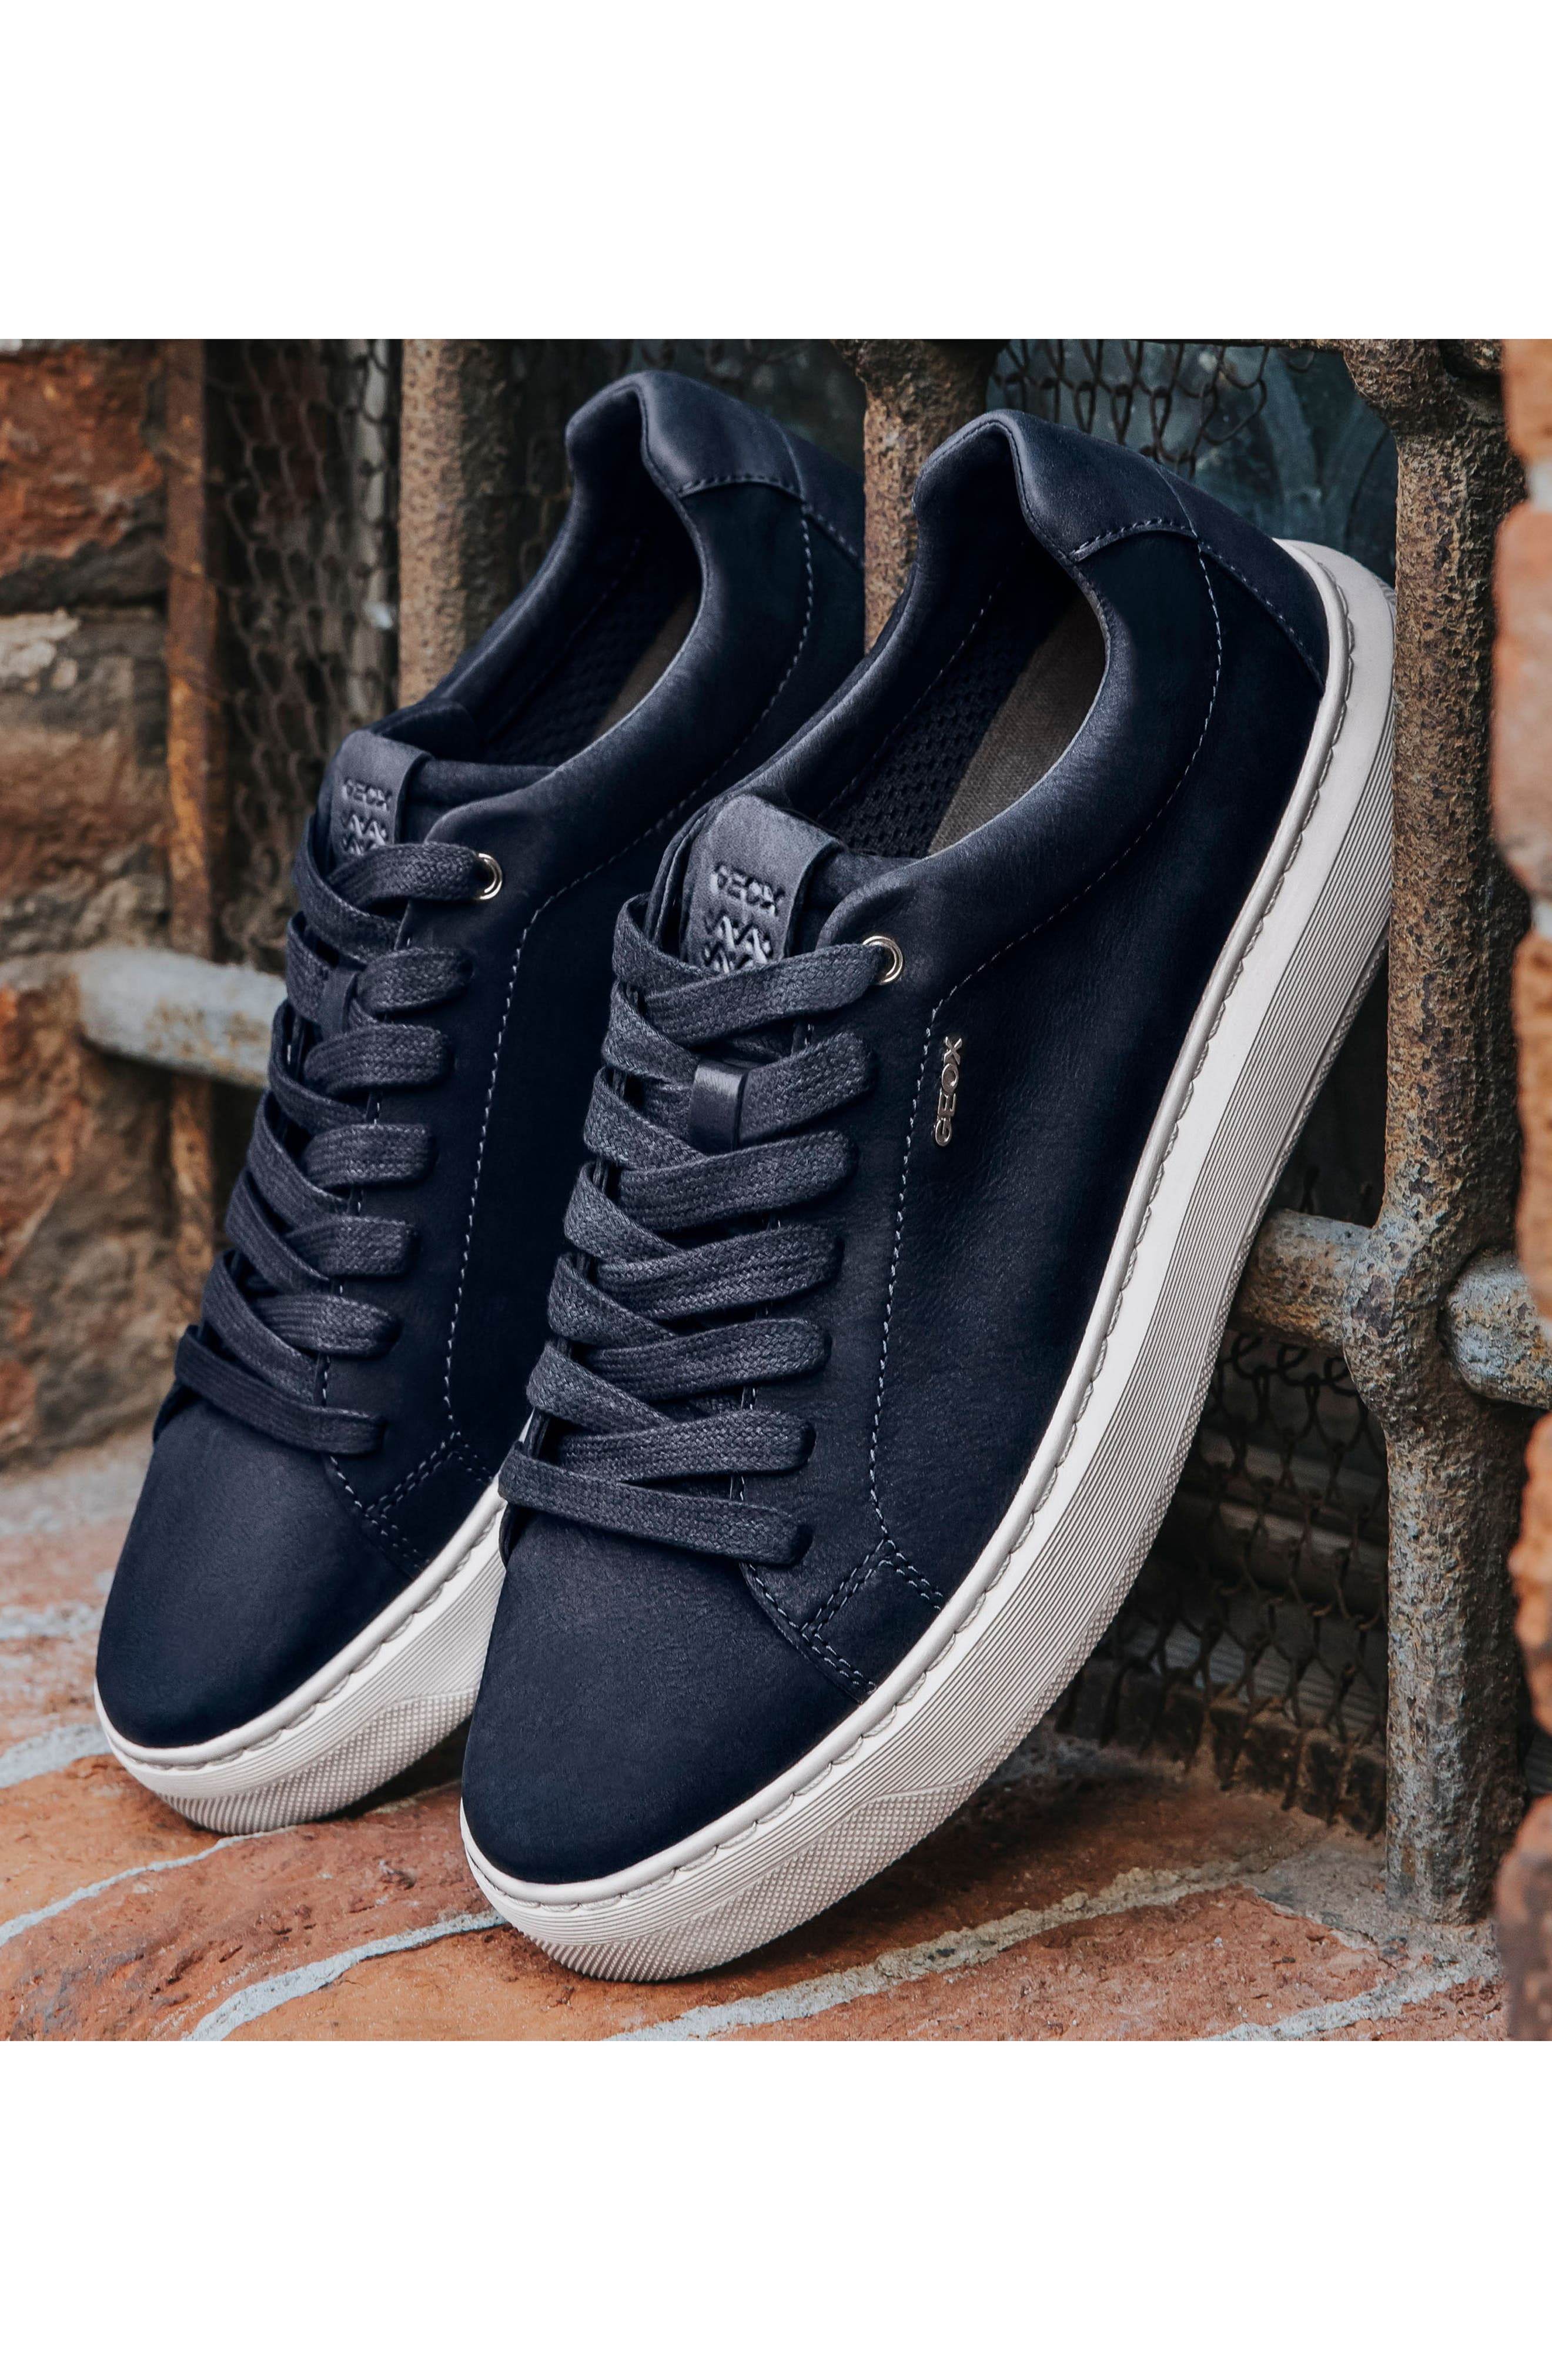 Deiven 5 Low Top Sneaker,                             Alternate thumbnail 7, color,                             DARK COFFEE LEATHER